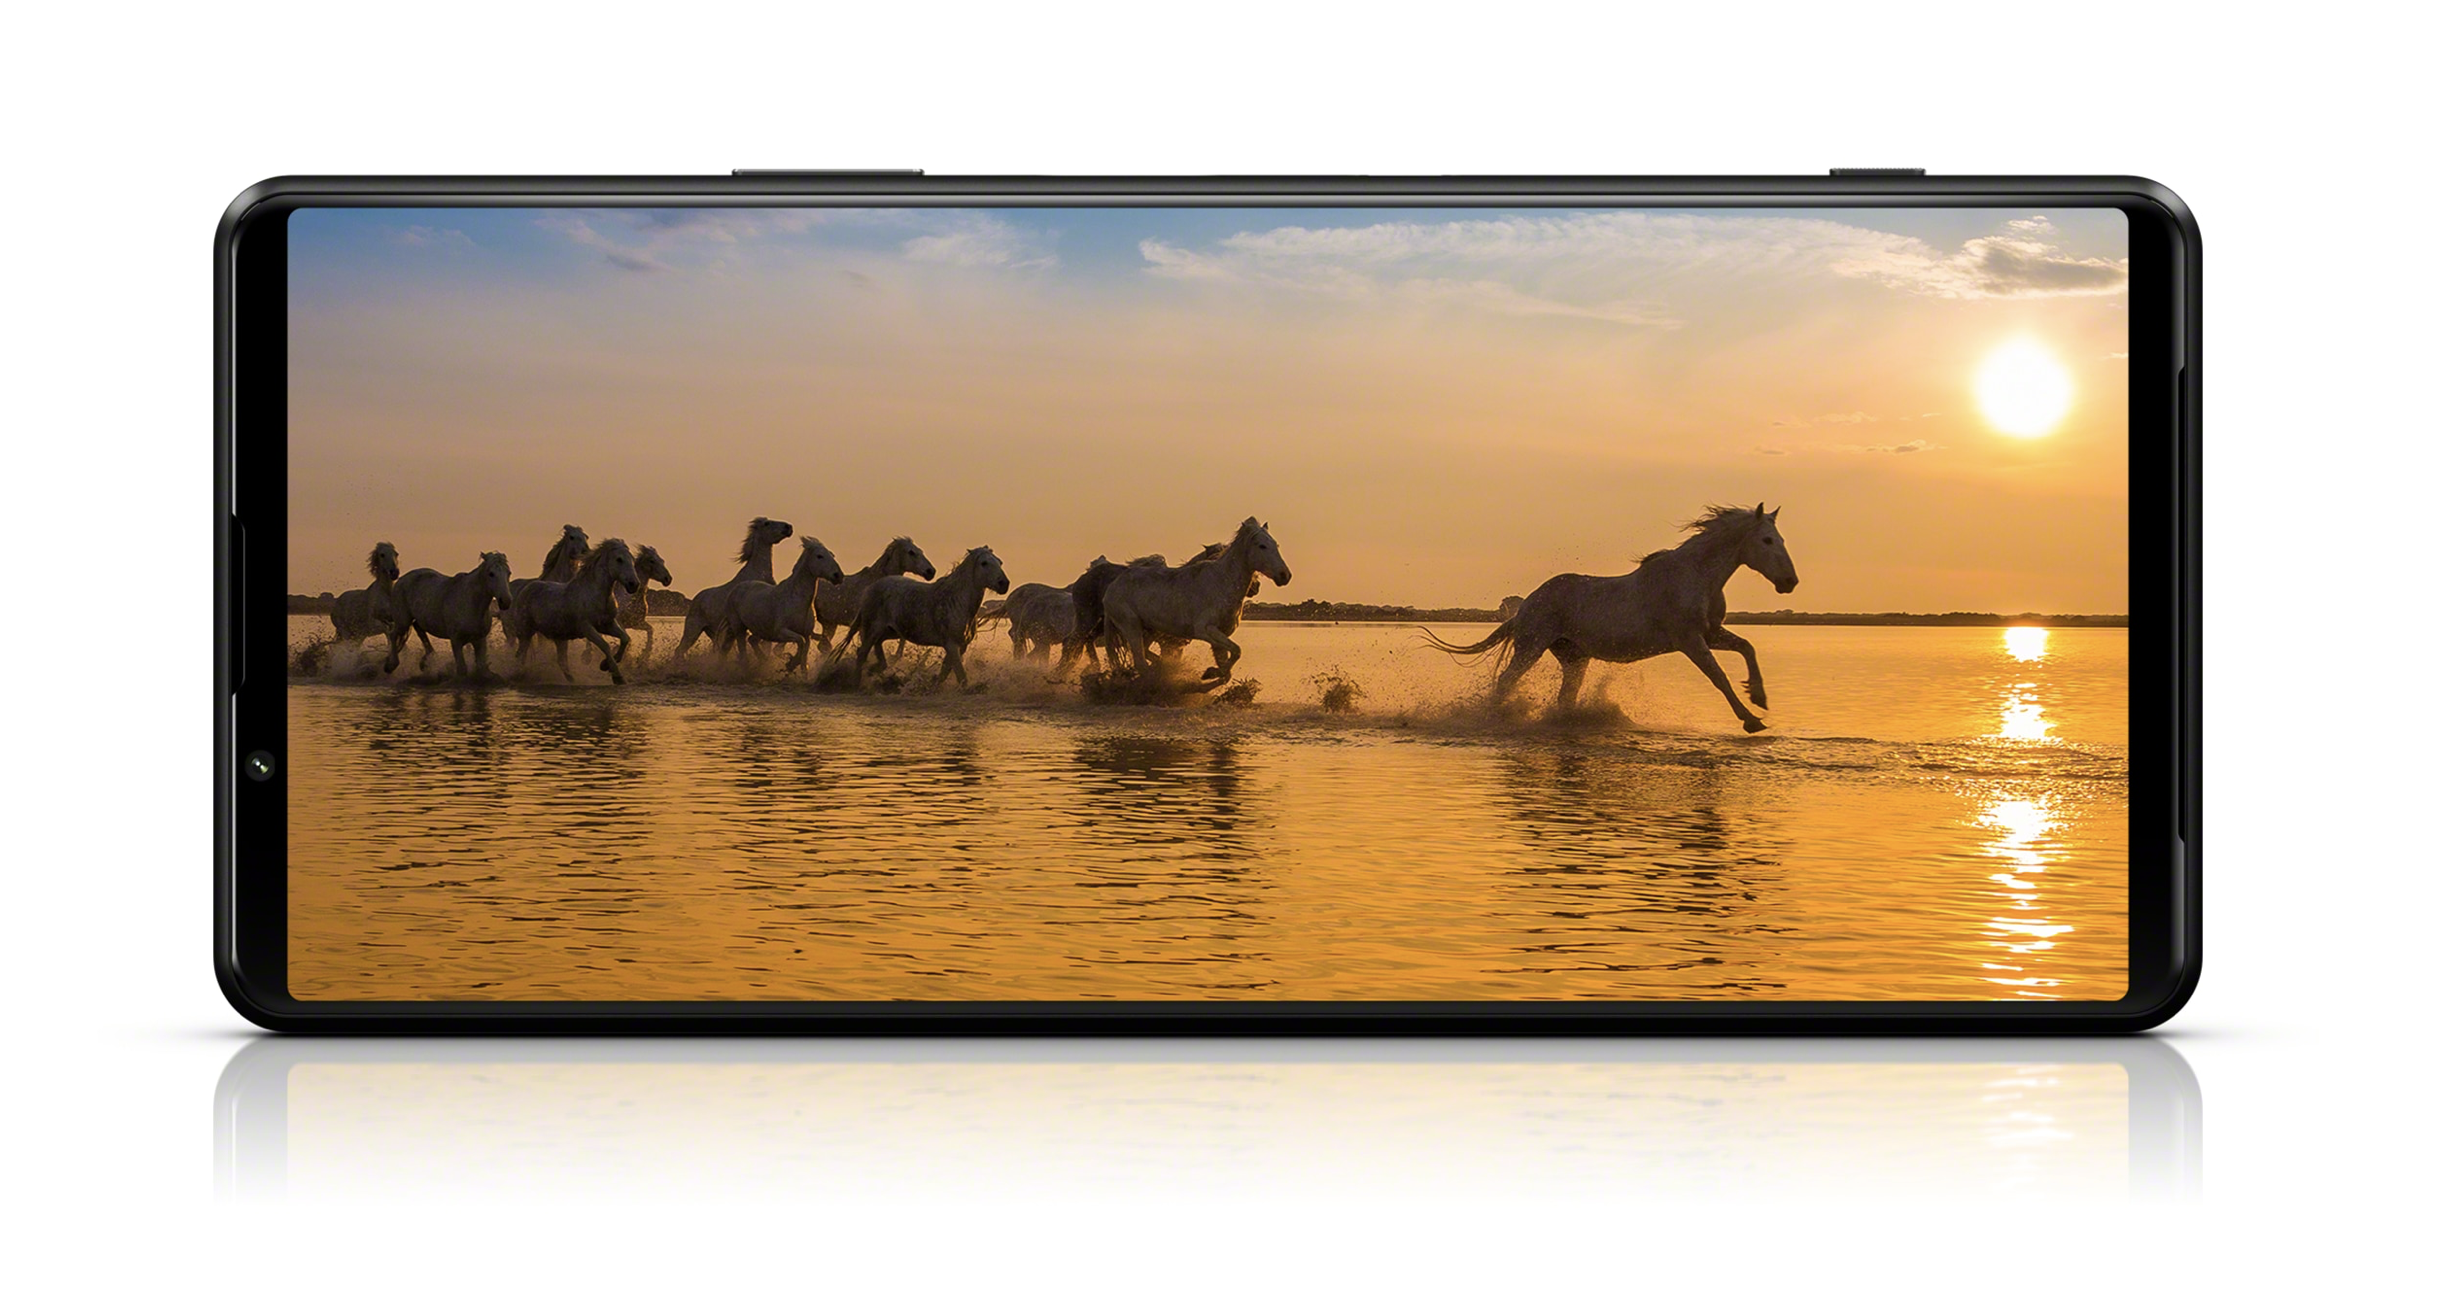 Xperia 1 III 4K HDR OLED 120Hz Refresh rate display